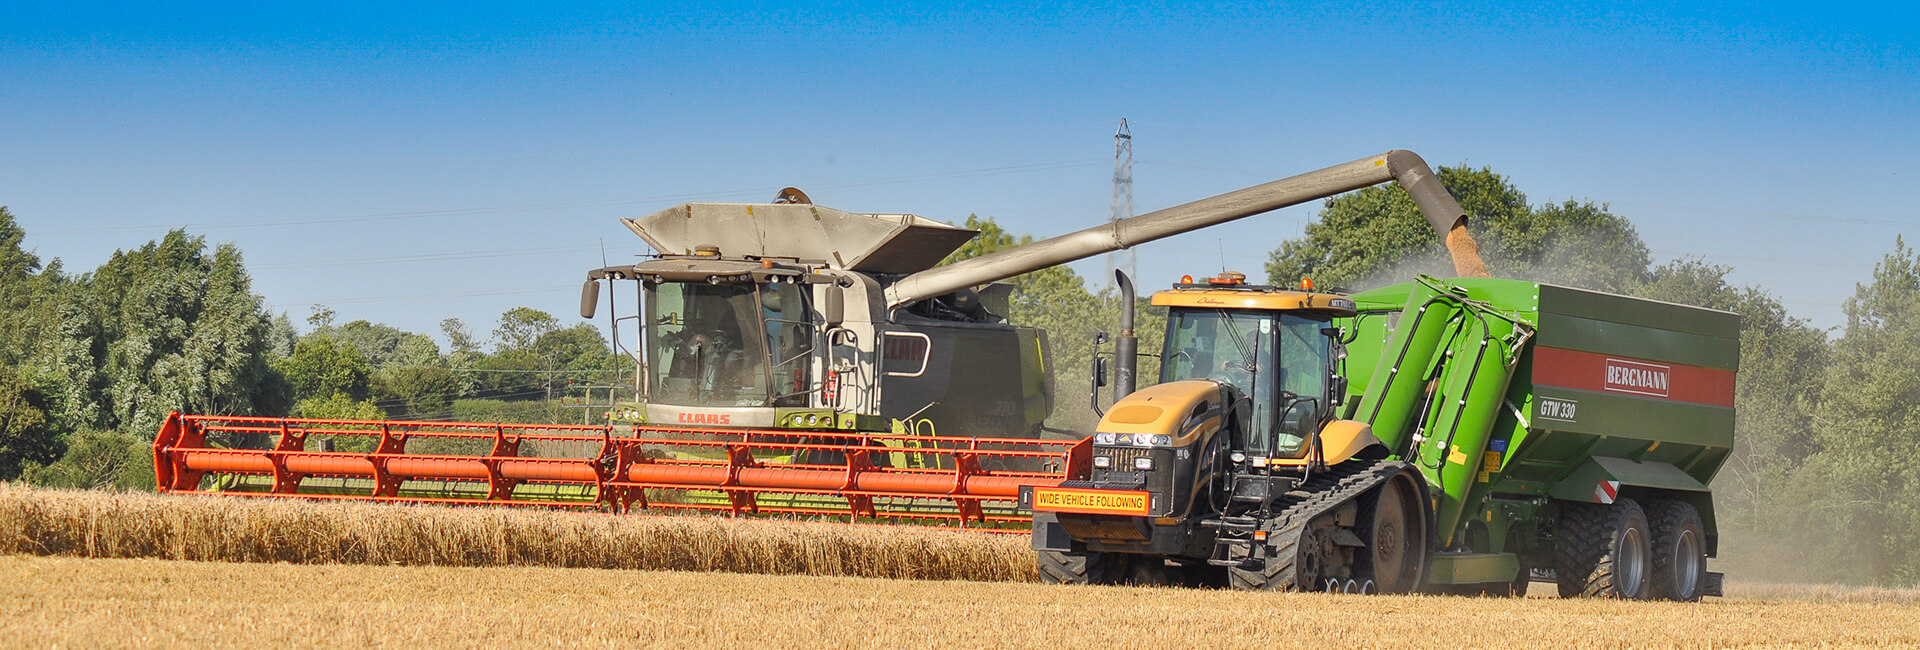 Challenger and grain chaser bin wheat harvest UK